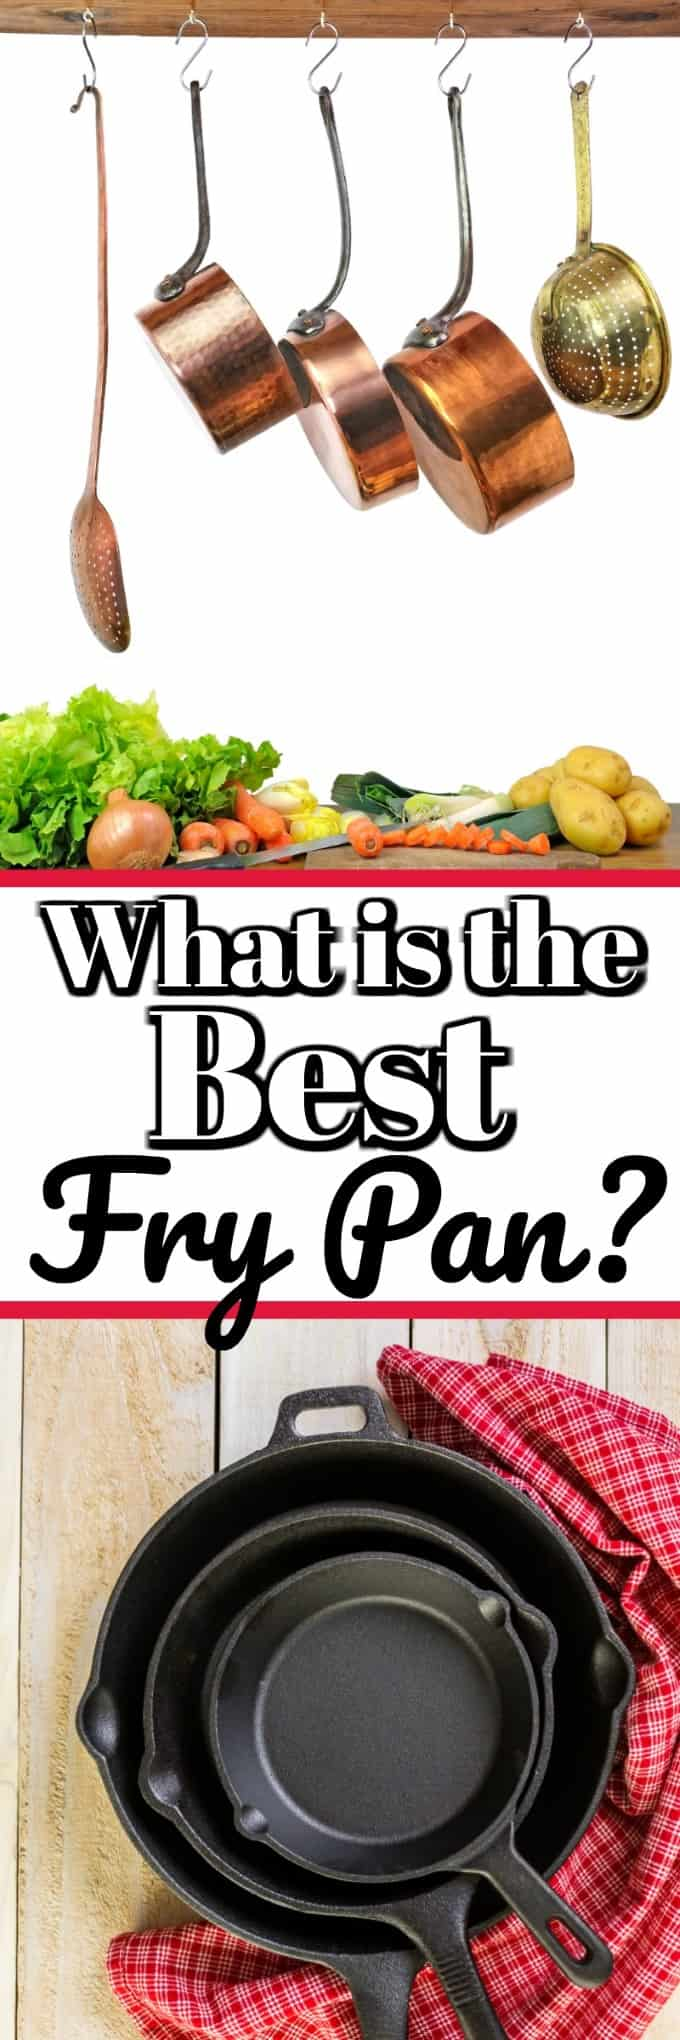 What is the Best Fry Pan? Cast Iron, stainless steel, copper or nonstick? Let us help you decide with this handy guide! #frypan #skillet